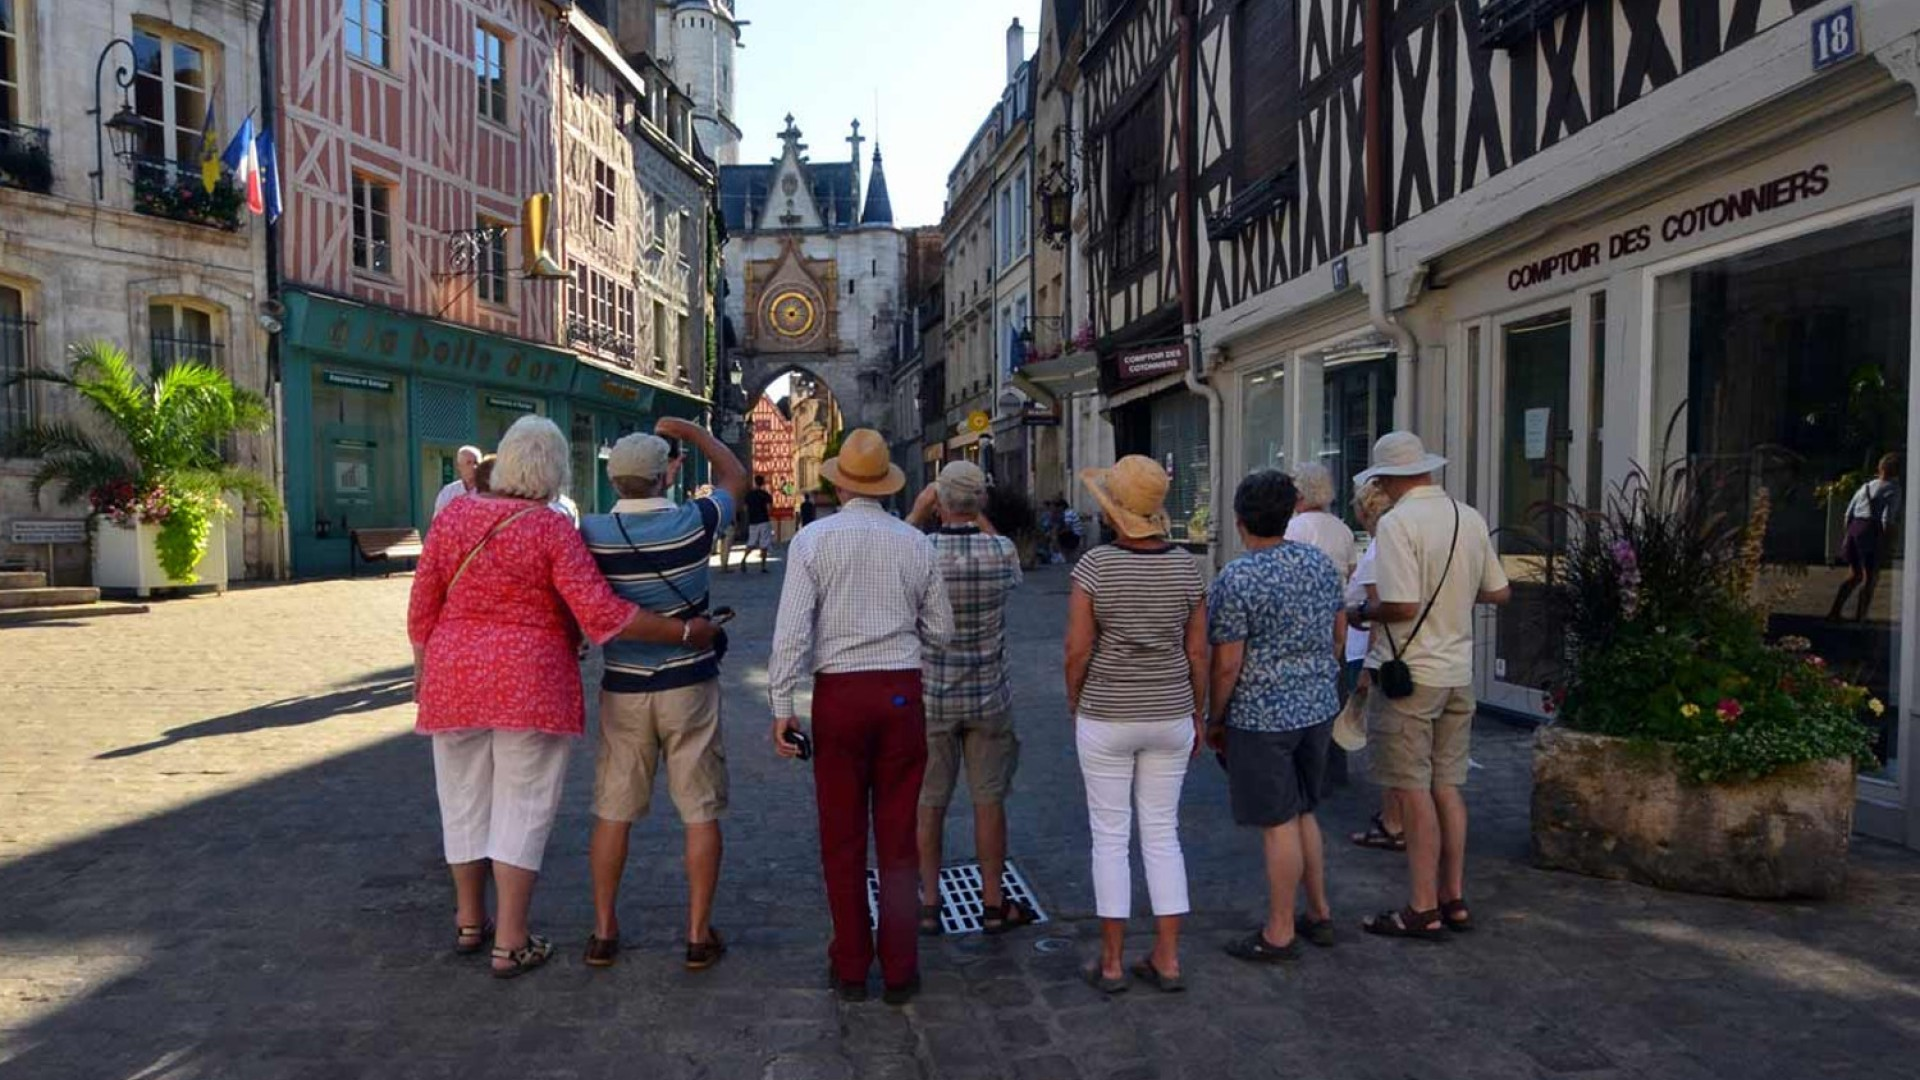 people on walking tour of french town